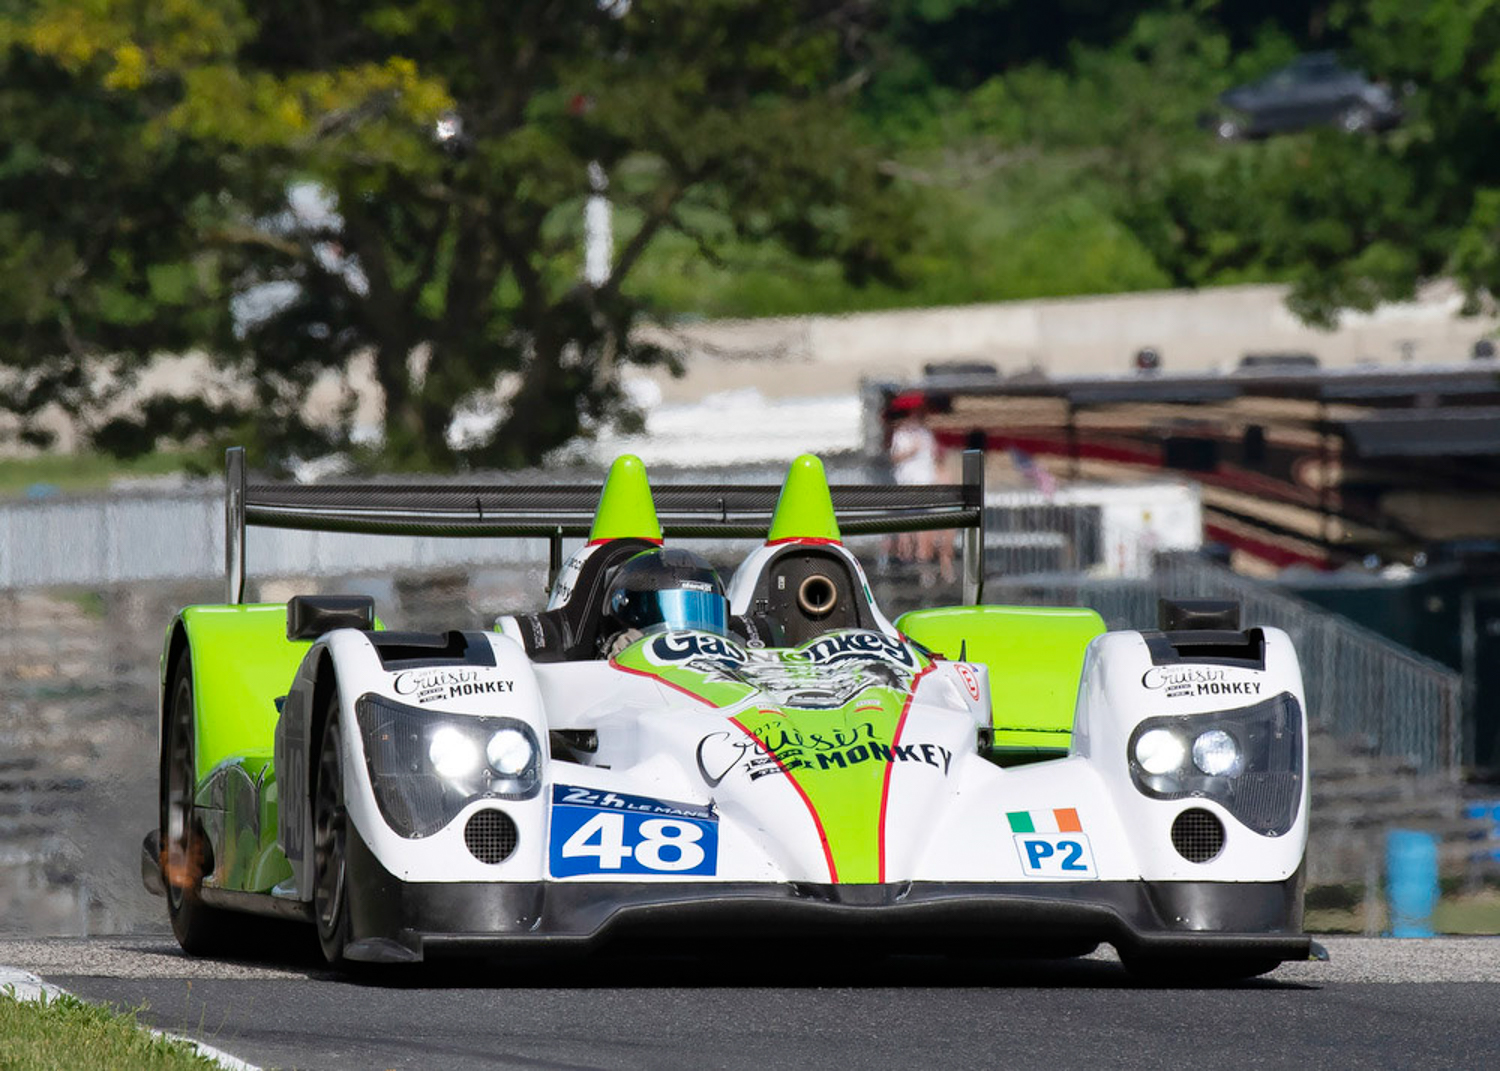 48 James Quadracci 2011 Oreca 03 Chuck Andersen